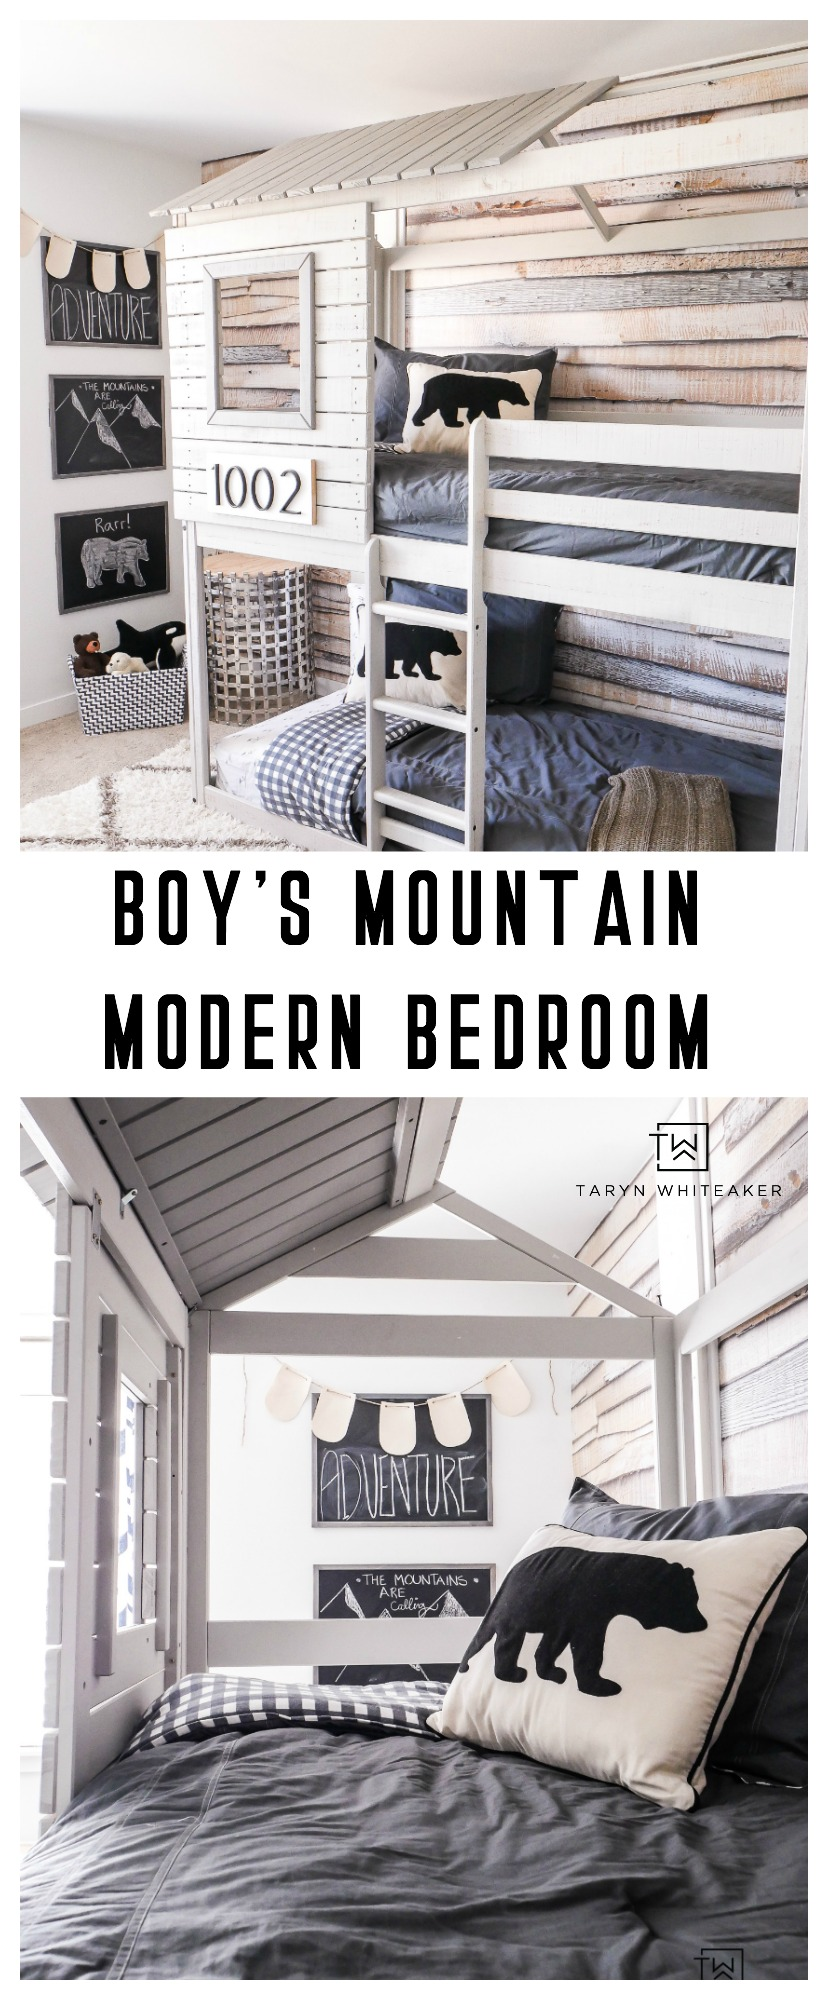 Take a tour of this Mountain Modern Boys Bedroom complete with a treehouse bunkbed and bear accents.